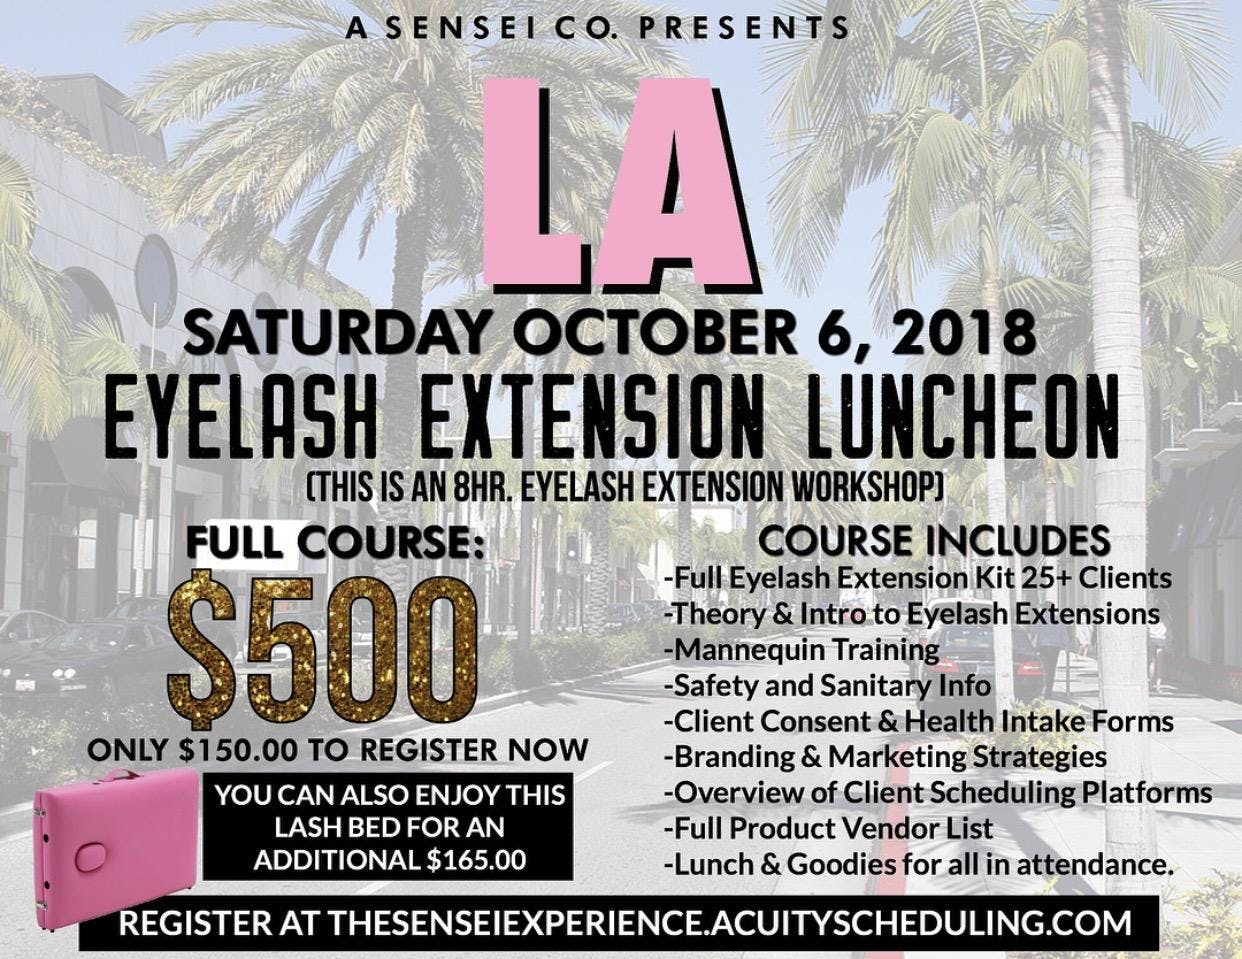 Los Angeles Eyelash Extension Luncheon 20 Oct 2018